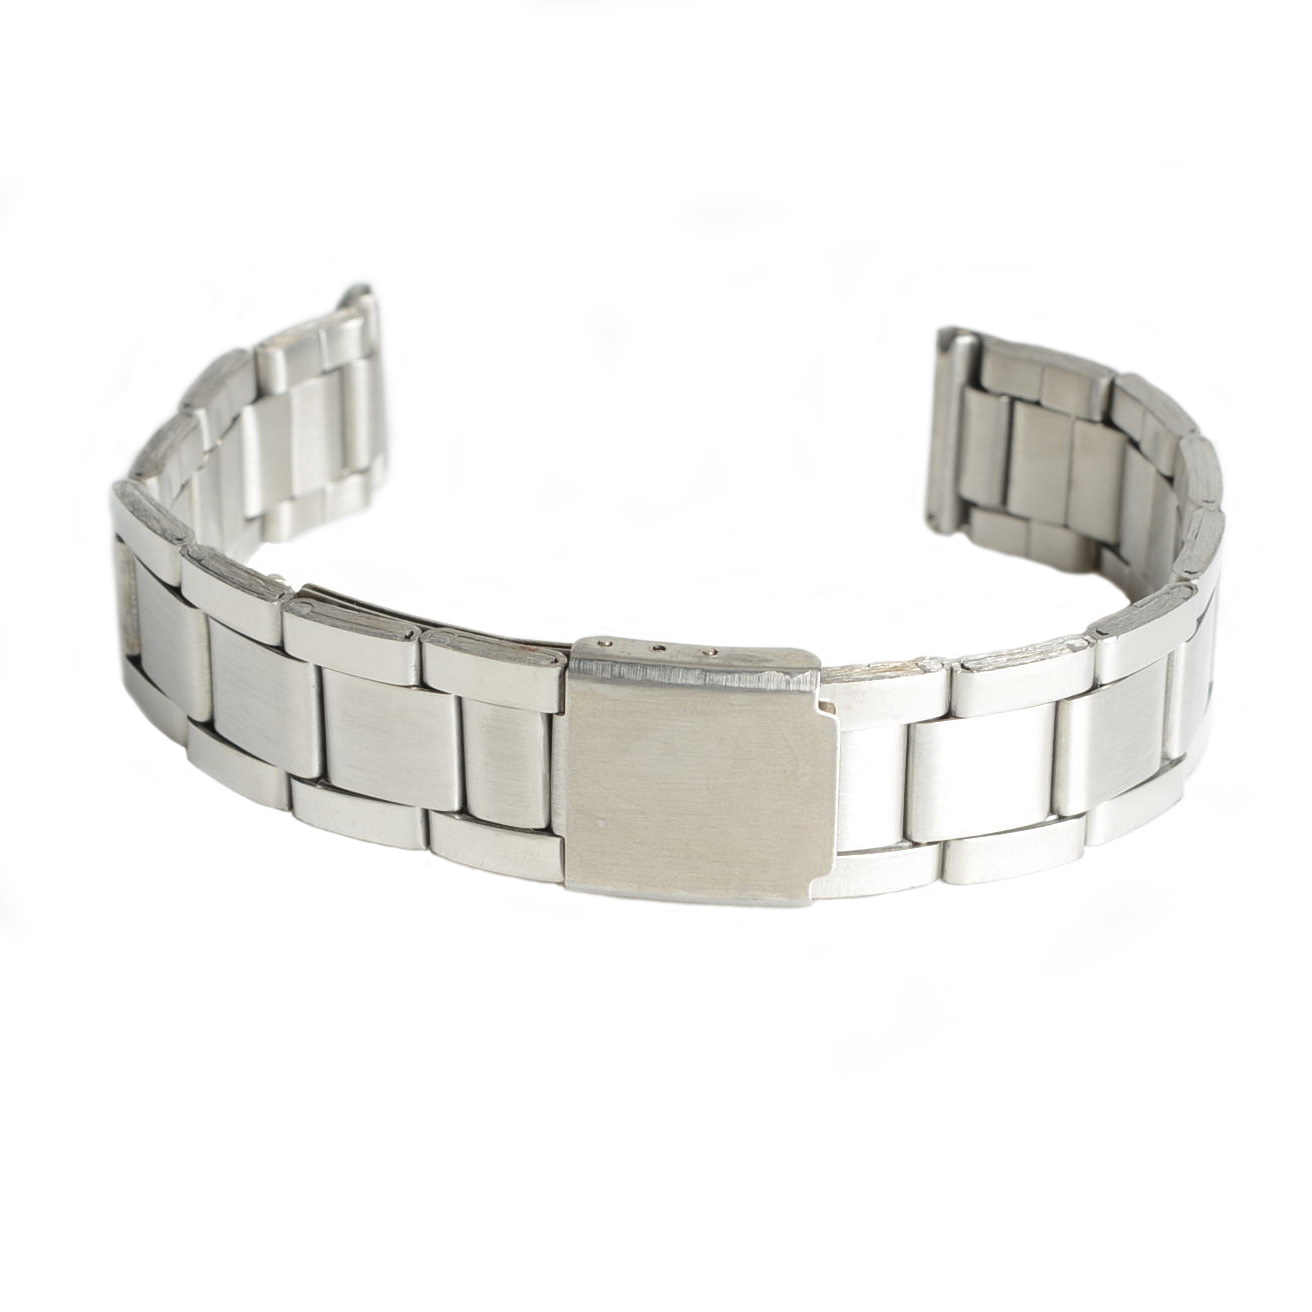 2018 Hot Sale Men Women 14mm Straight End Stainless Steel Watch Band Strap Bracelet Watchband SB0466